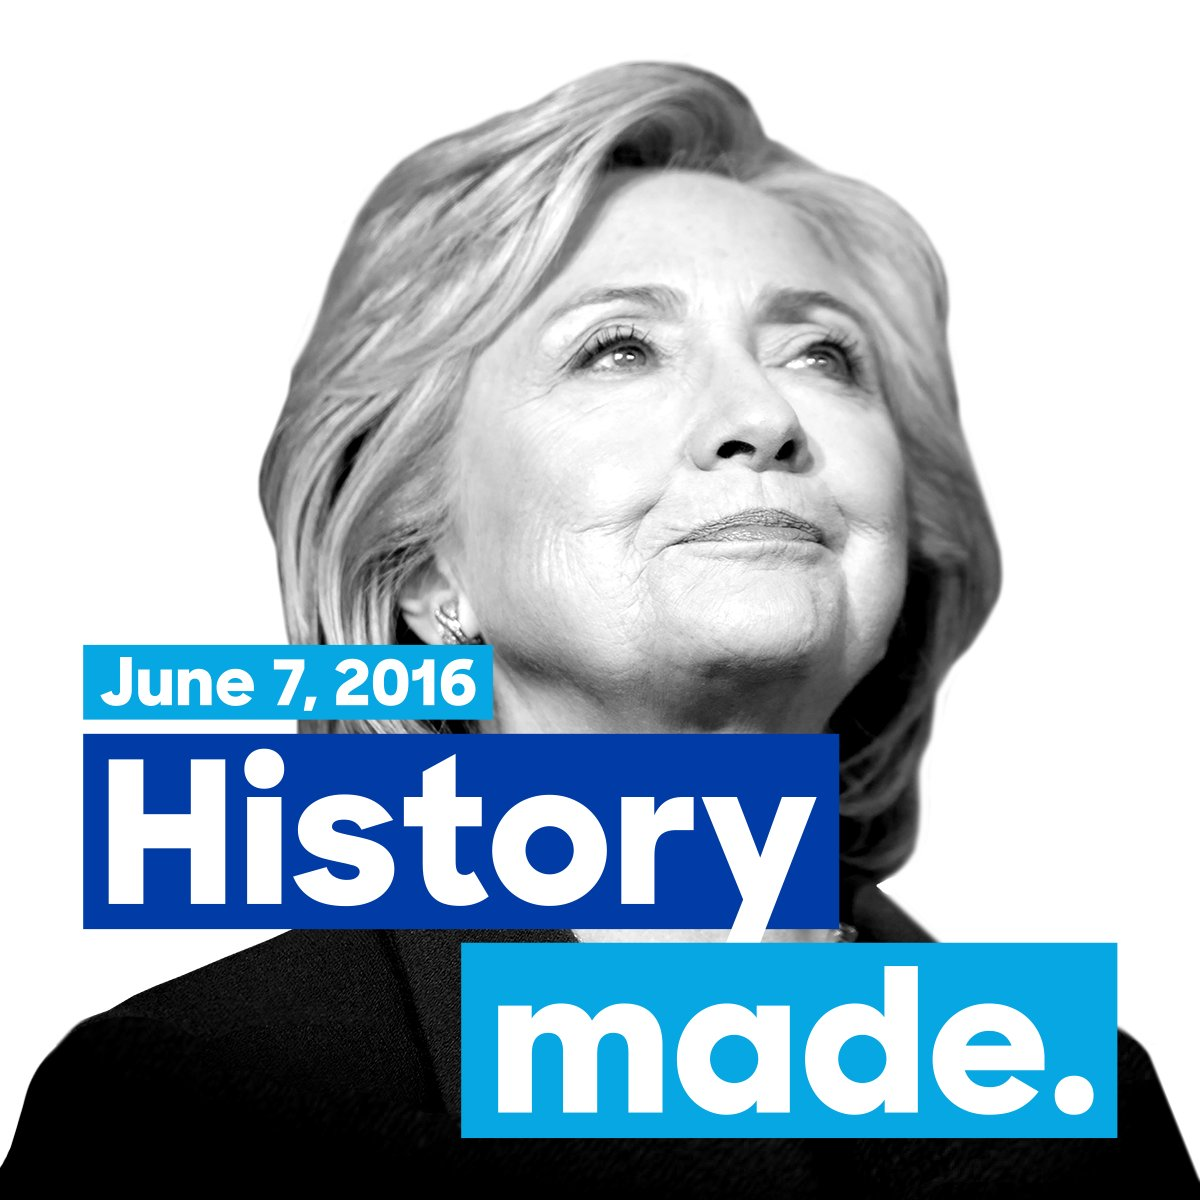 hillary clinton on twitter tonight we can say with pride that in